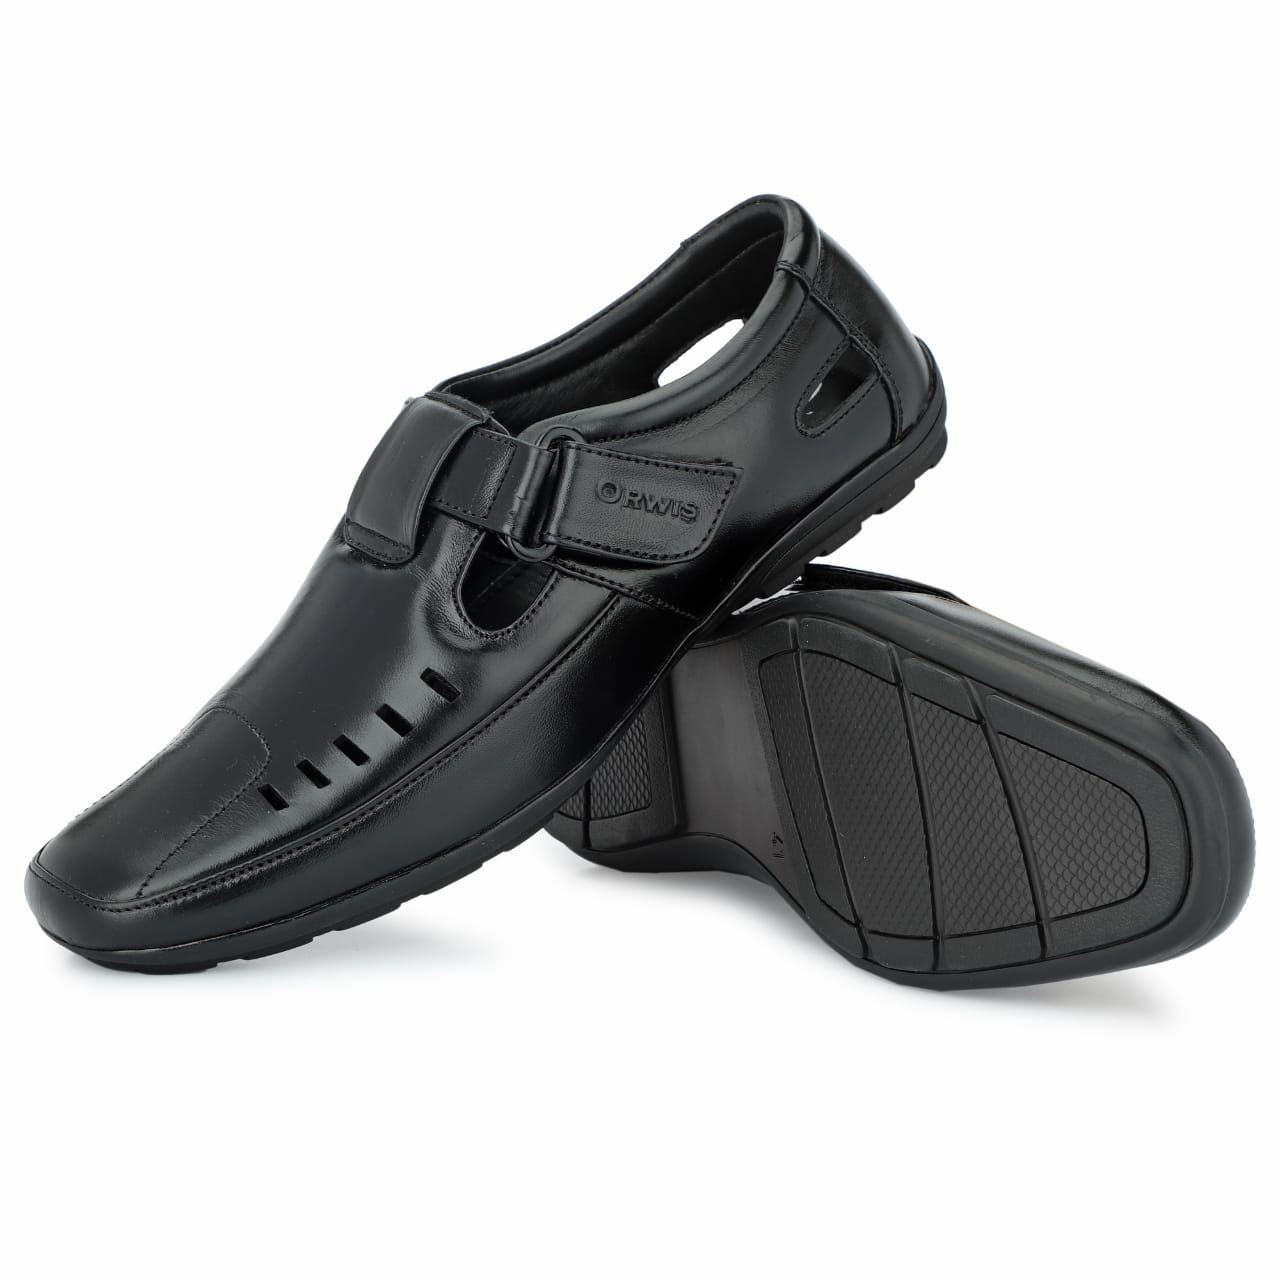 SANDALSMS125 (BLACK,6-10,8 PAIR)